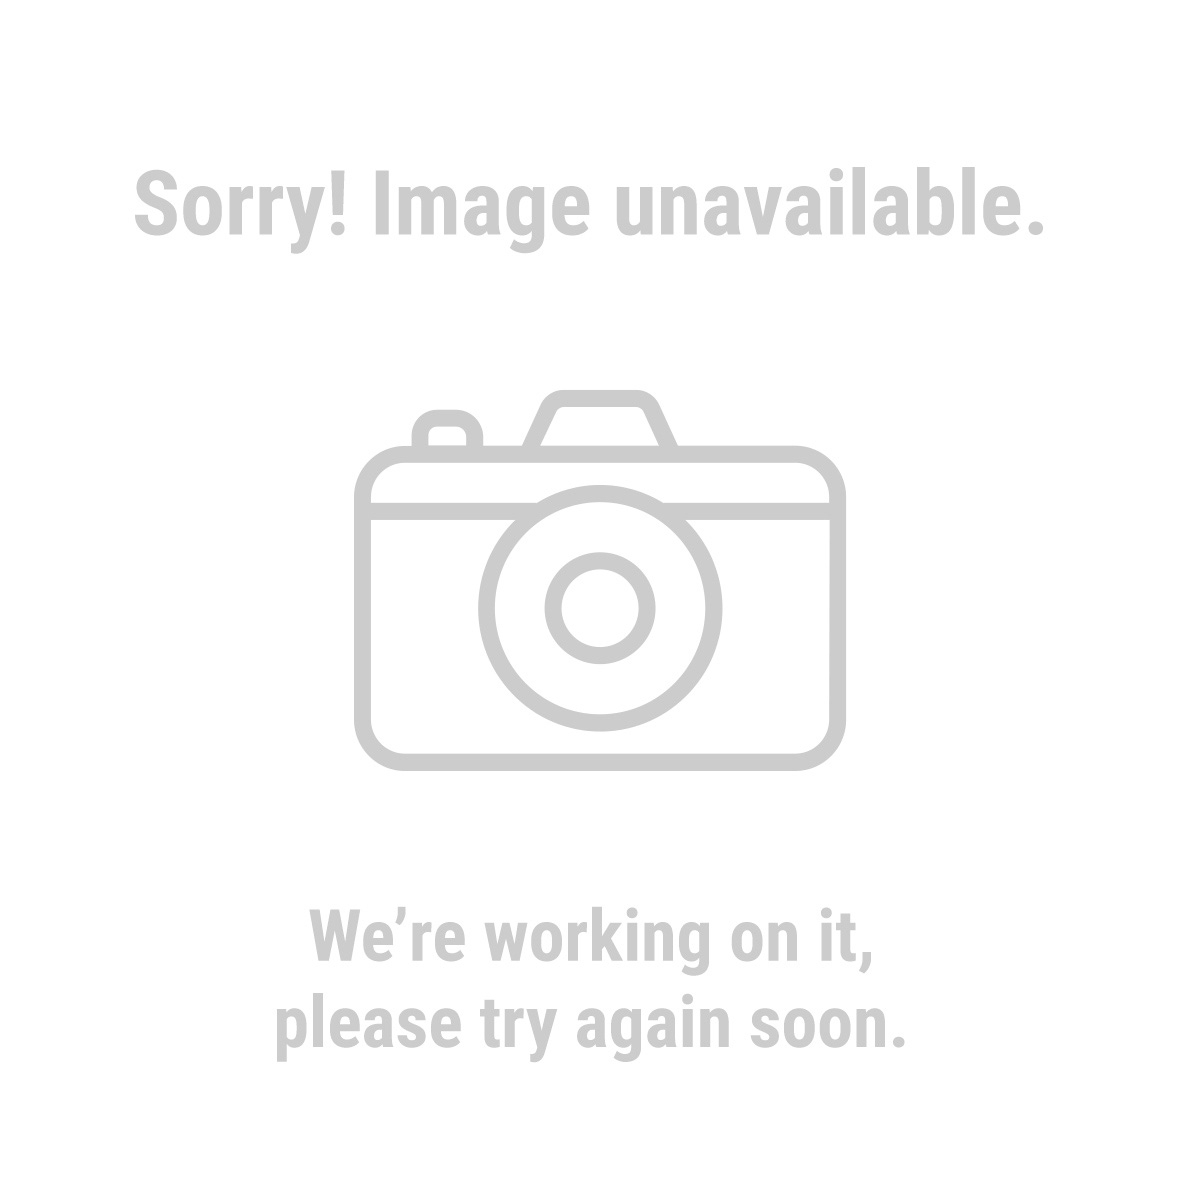 Predator 420cc Engine, Predator, Free Engine Image For User Manual ...